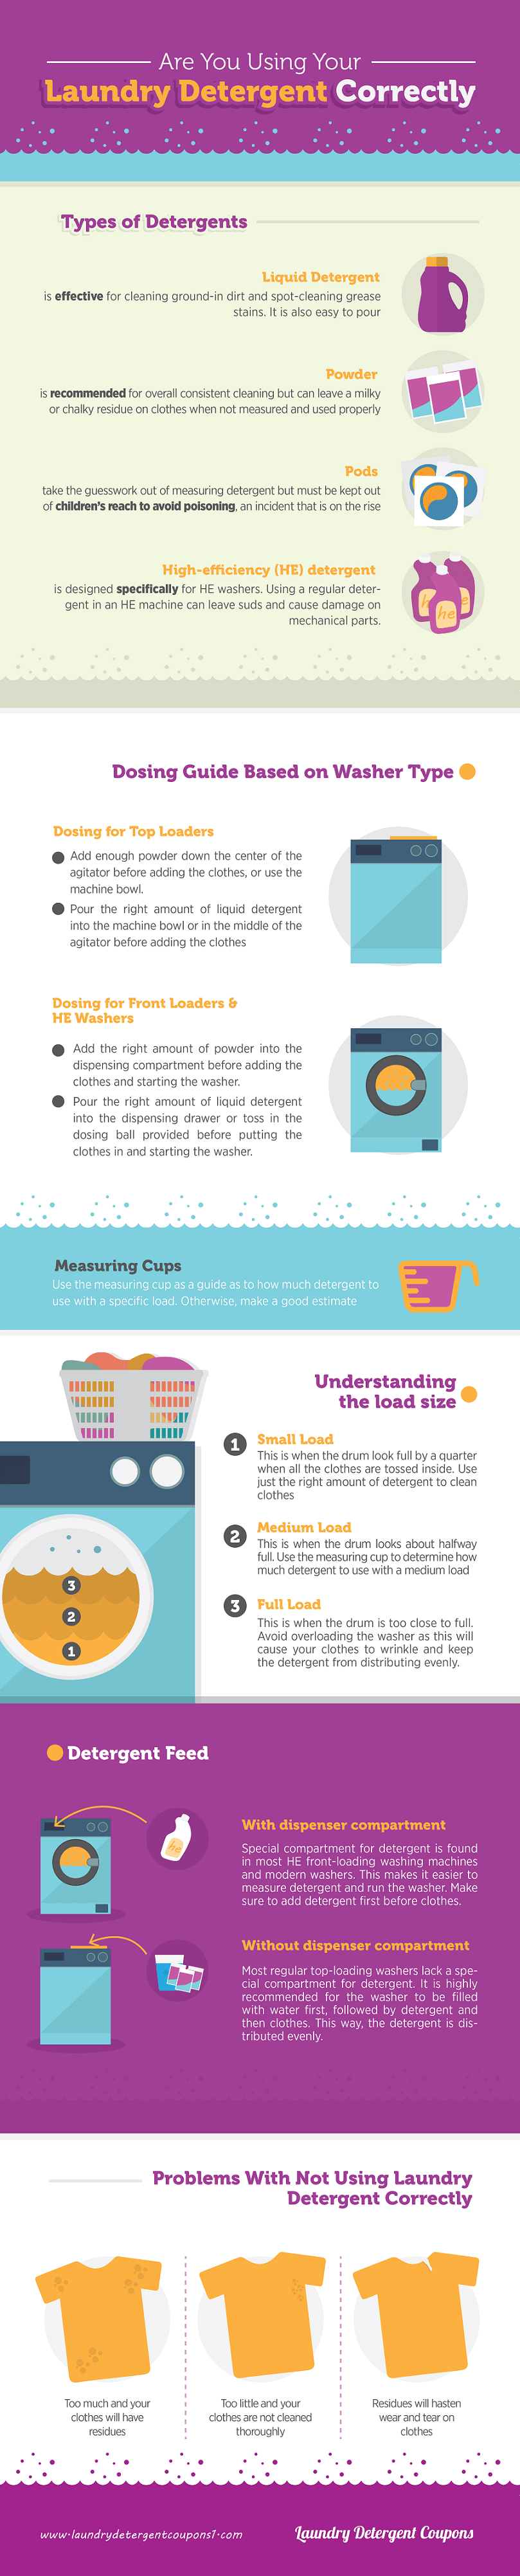 Using Your Laundry Detergent -infographic